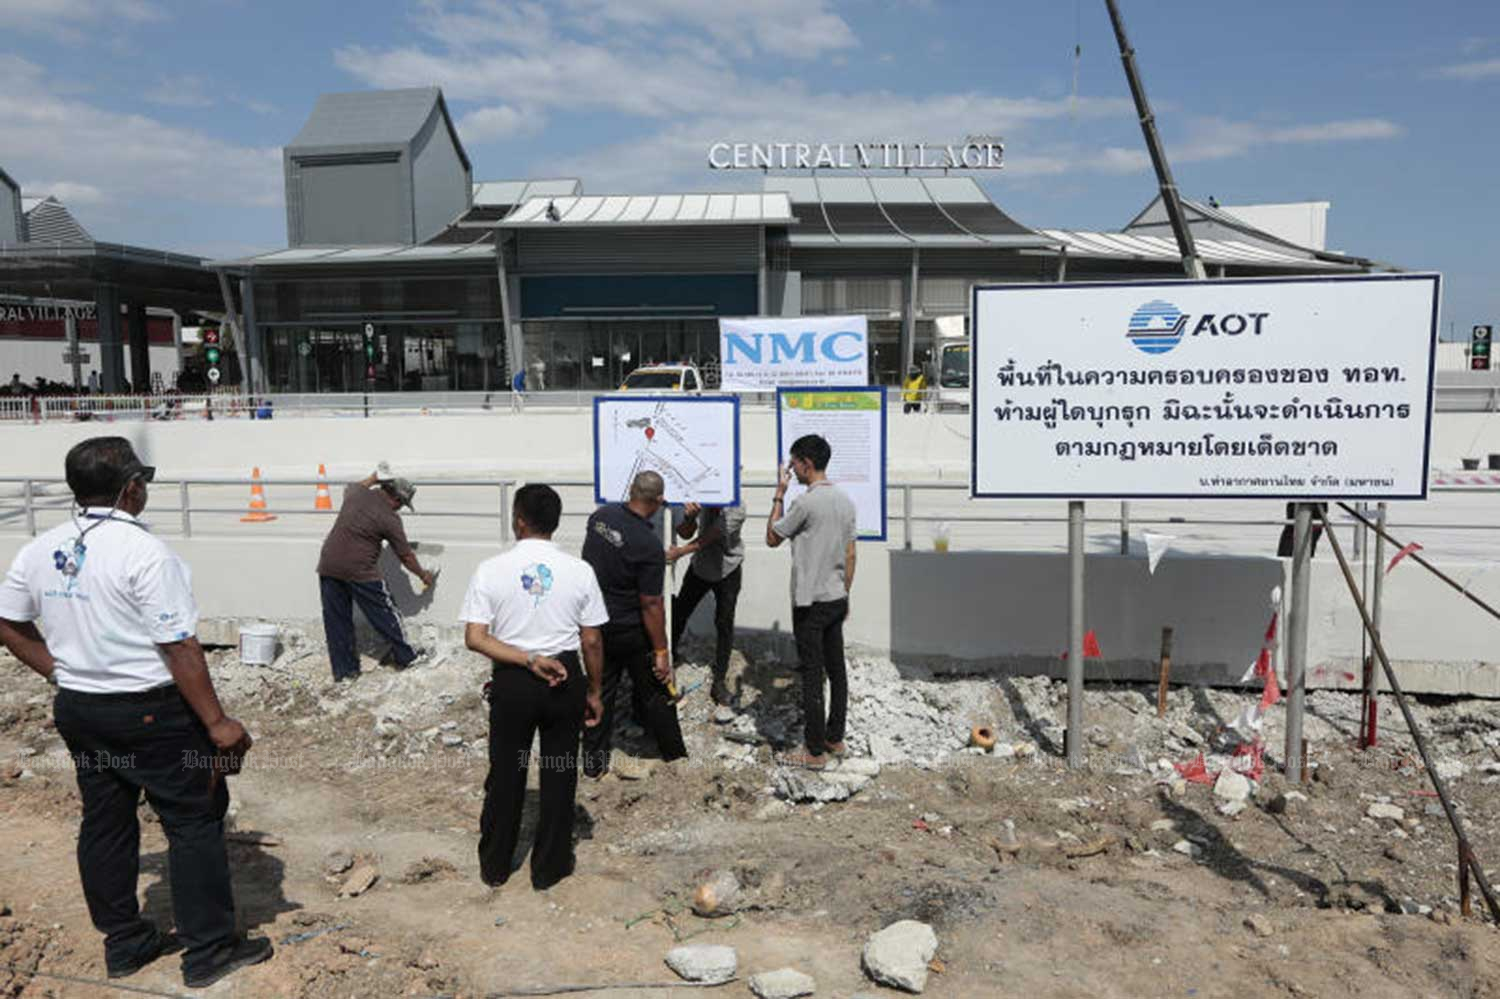 Officials from Airports of Thailand (AoT) put up signs in front of Central Village, a new luxury shopping complex due to open on Saturday. One sign warns it is AoT land  and trespassers will be prosecuted. (Photo by Patipang Janthong)